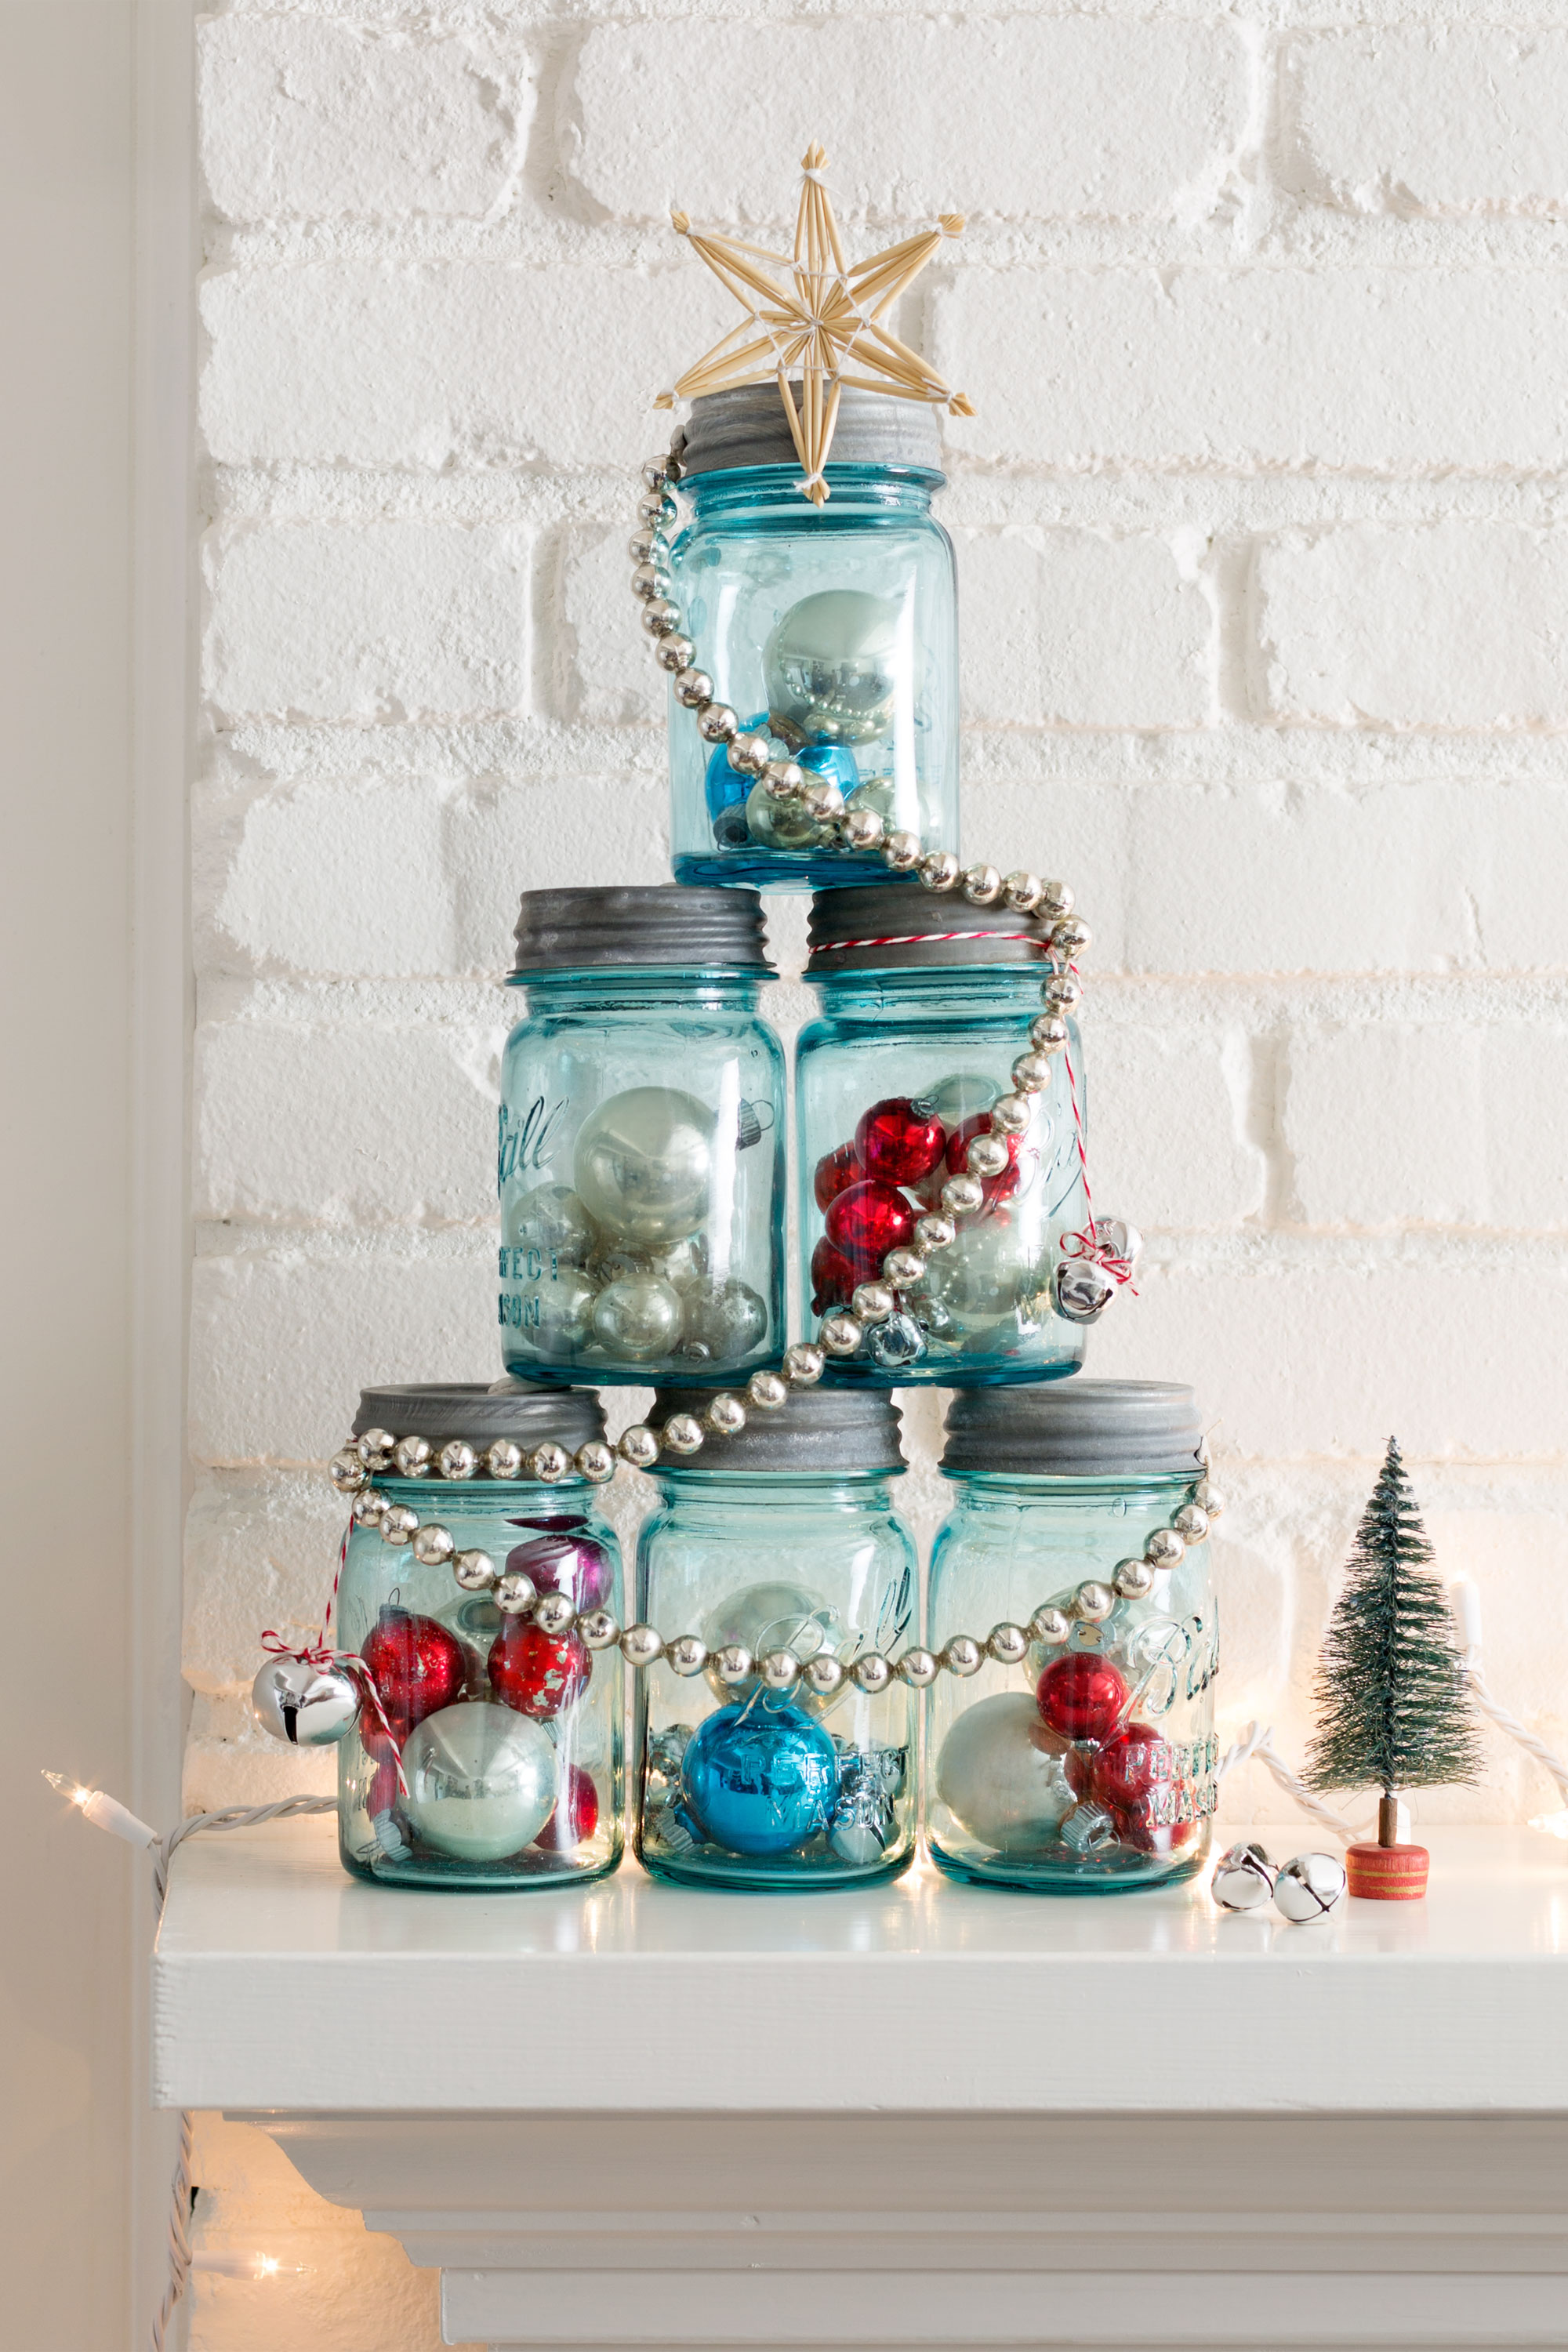 37 DIY Homemade Christmas Decorations - Christmas Decor ...